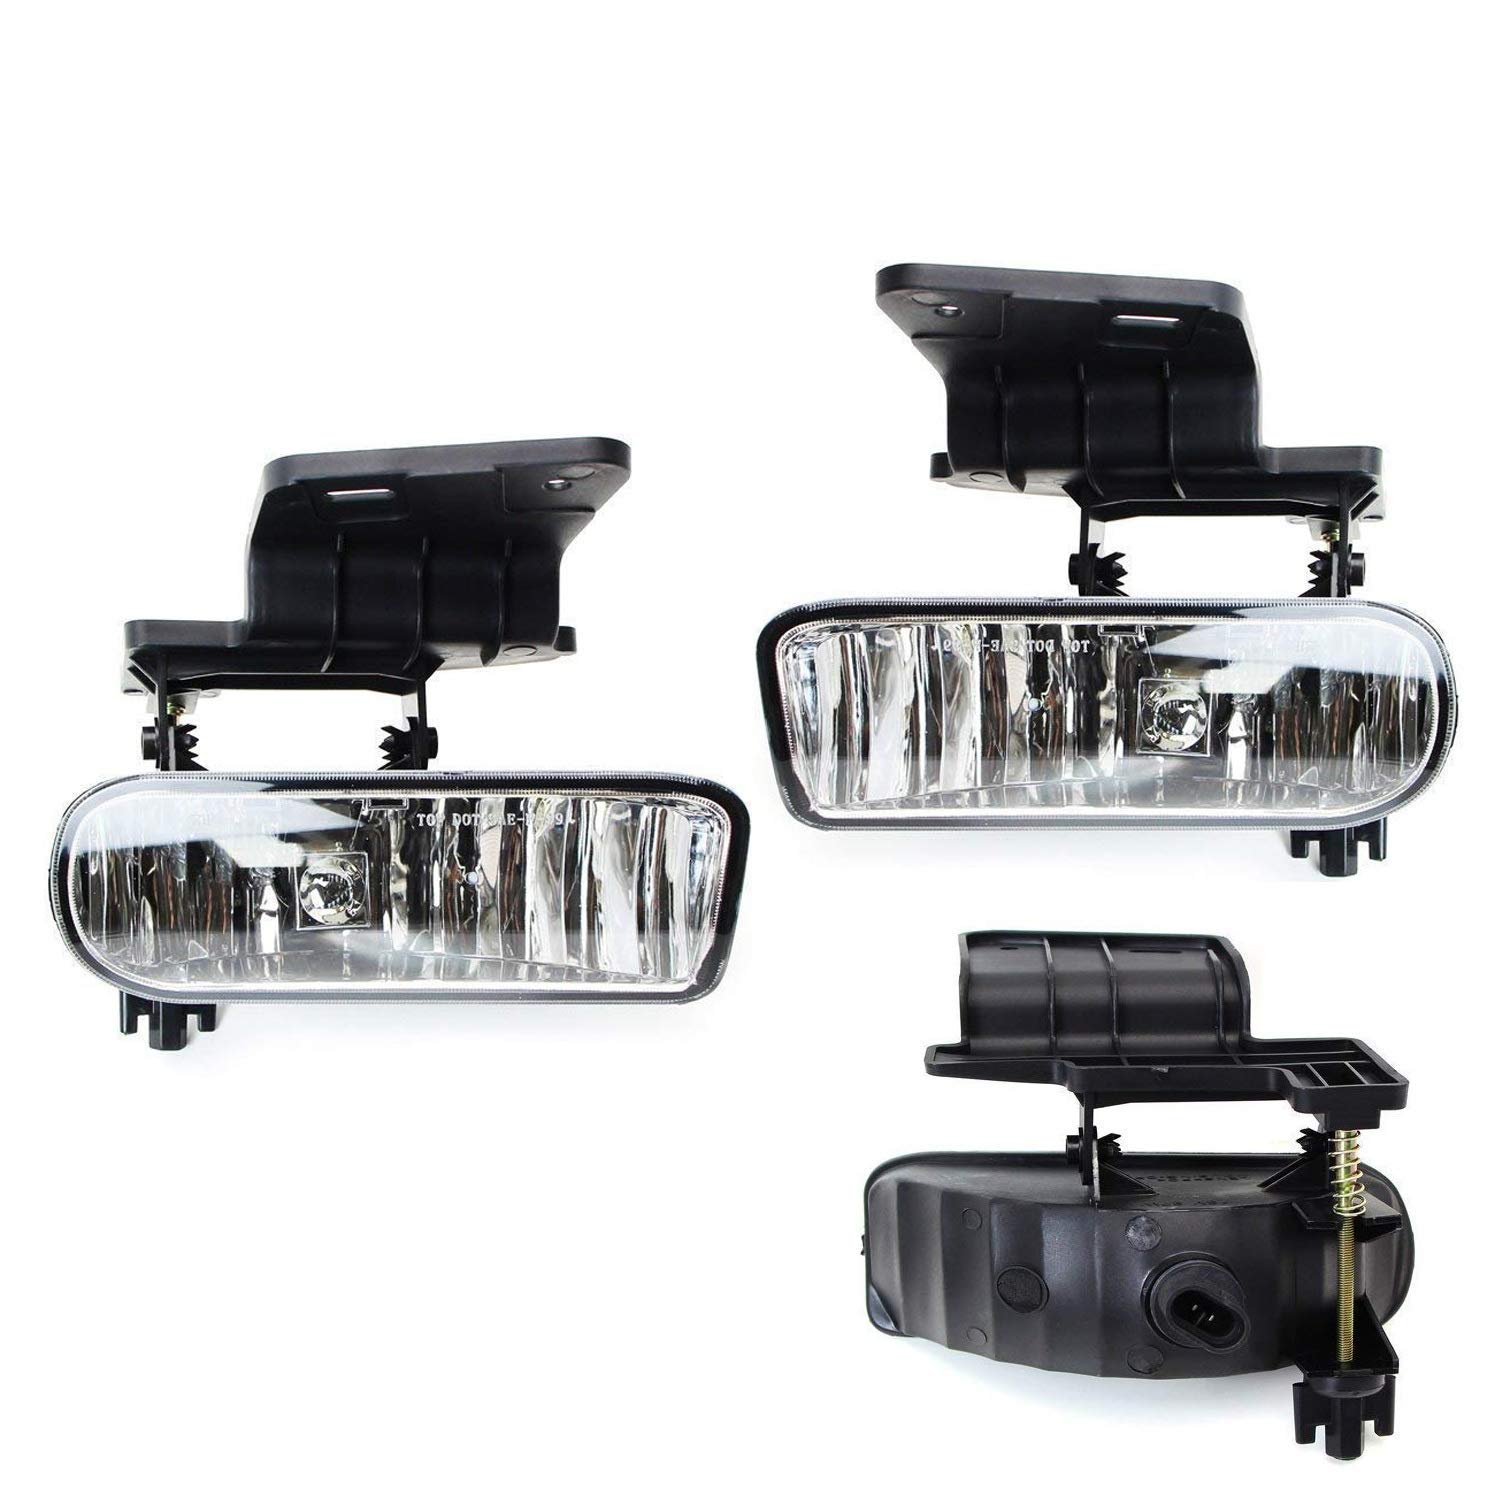 2000-2006 Suburban Tahoe iJDMTOY 89-343-Clear Clear Lens Fog Lights Foglamp Kit with 880 Halogen Bulbs w//Mounting Brackets For 1999-2002 Chevrolet Silverado 1500 2500 2000-2001 3500